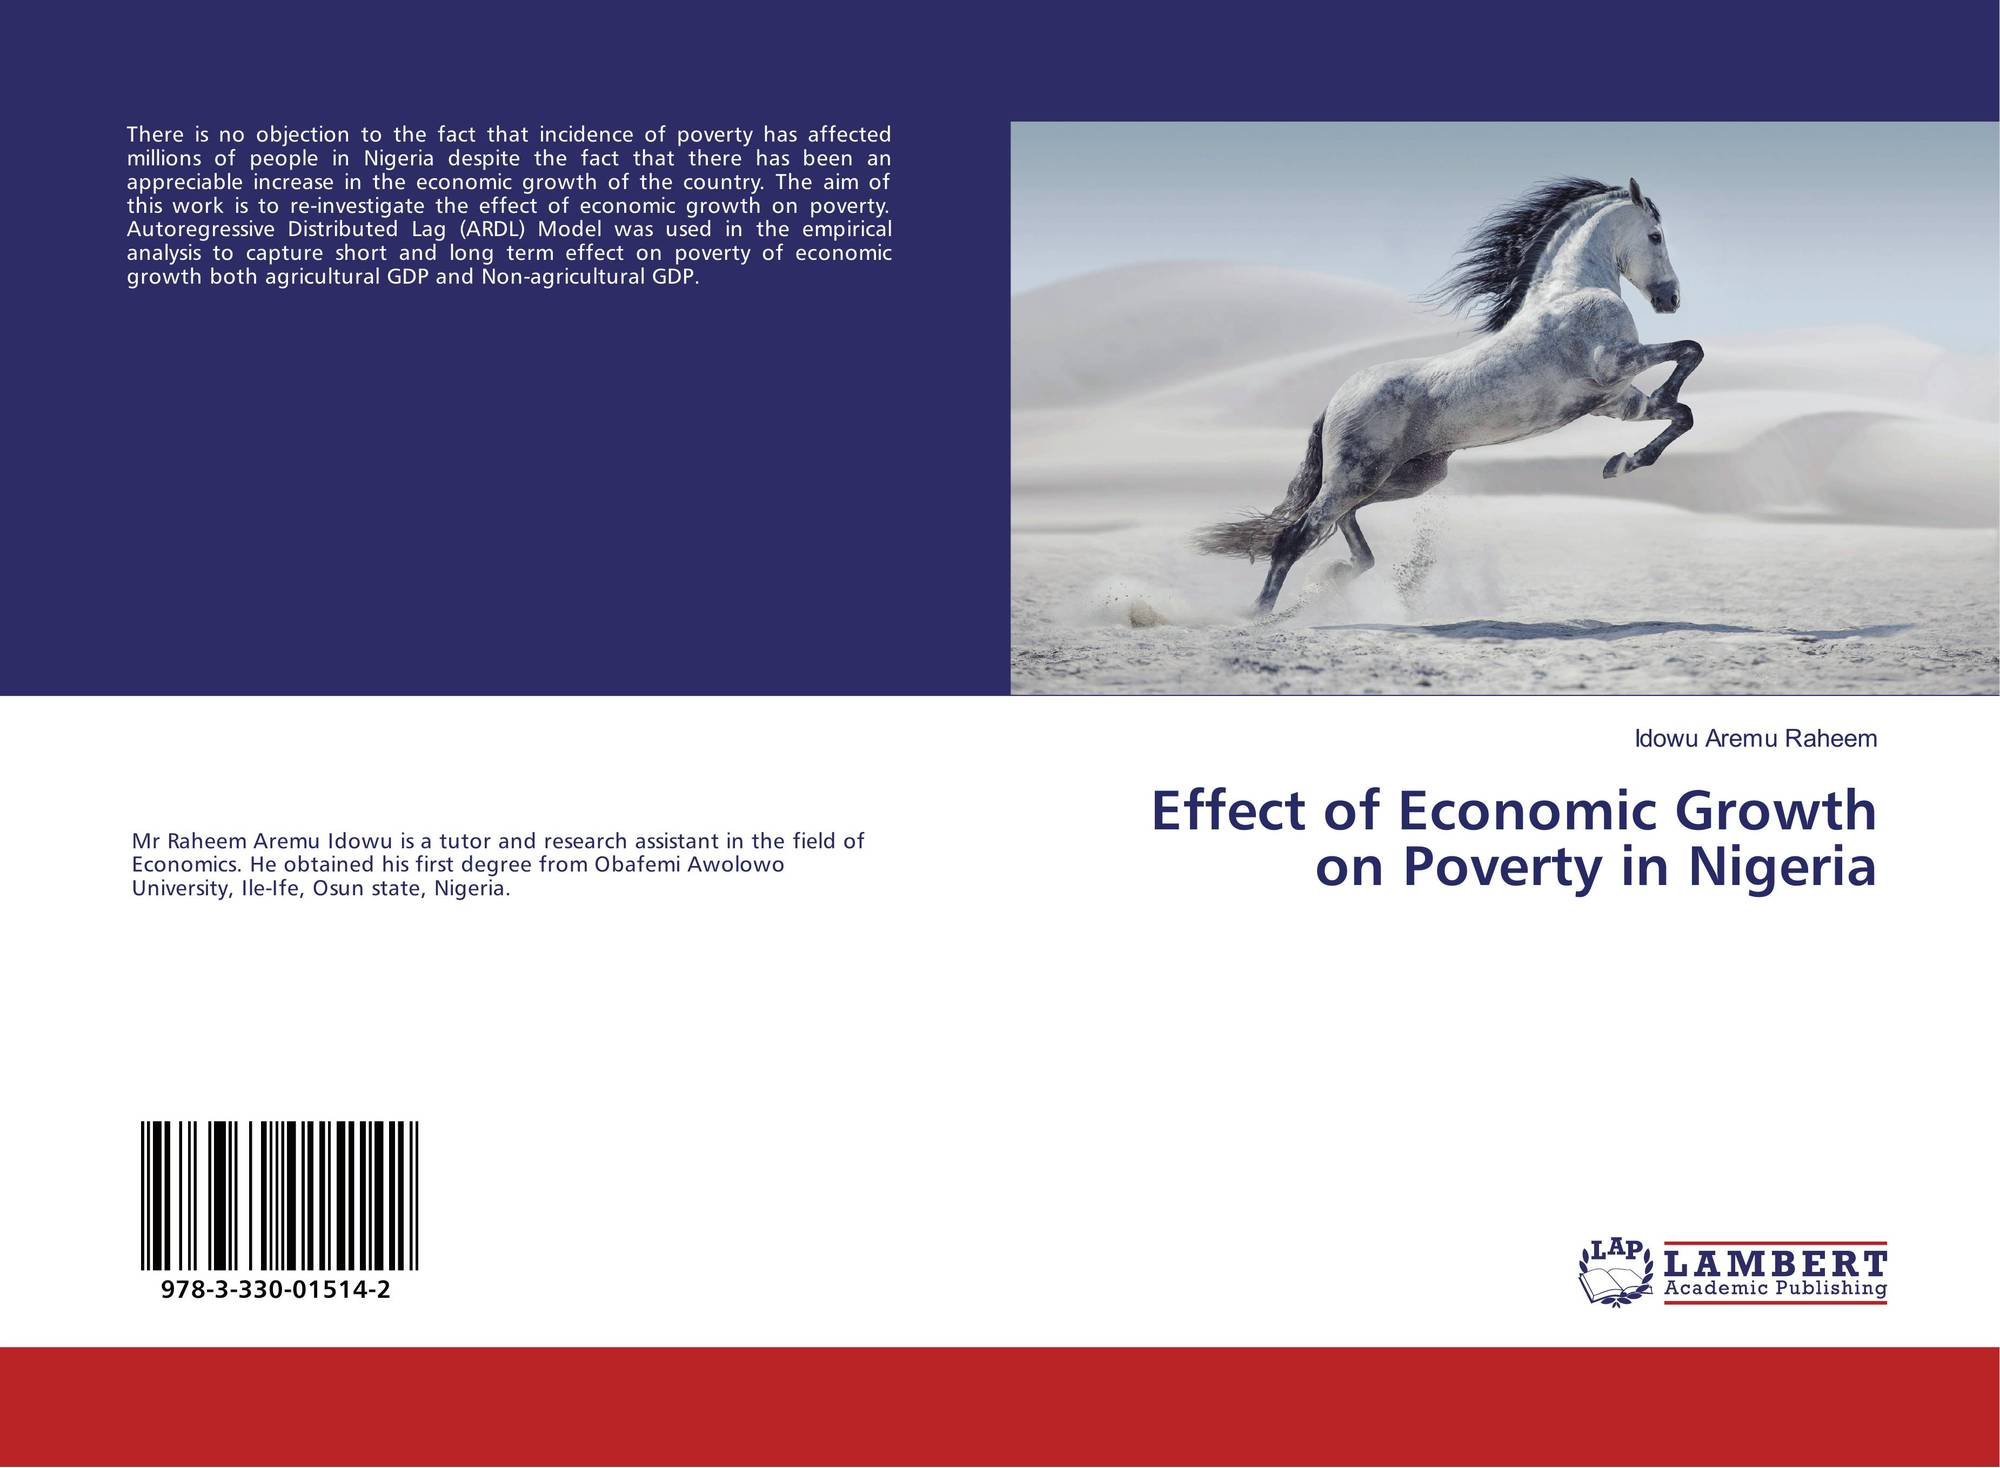 effects of economic growth on poverty Financial sector development plays a vital role in facilitating economic growth and poverty reduction, and finds that these arguments are supported by a large body of empirical evidence from both cross-country and country-specific studies.